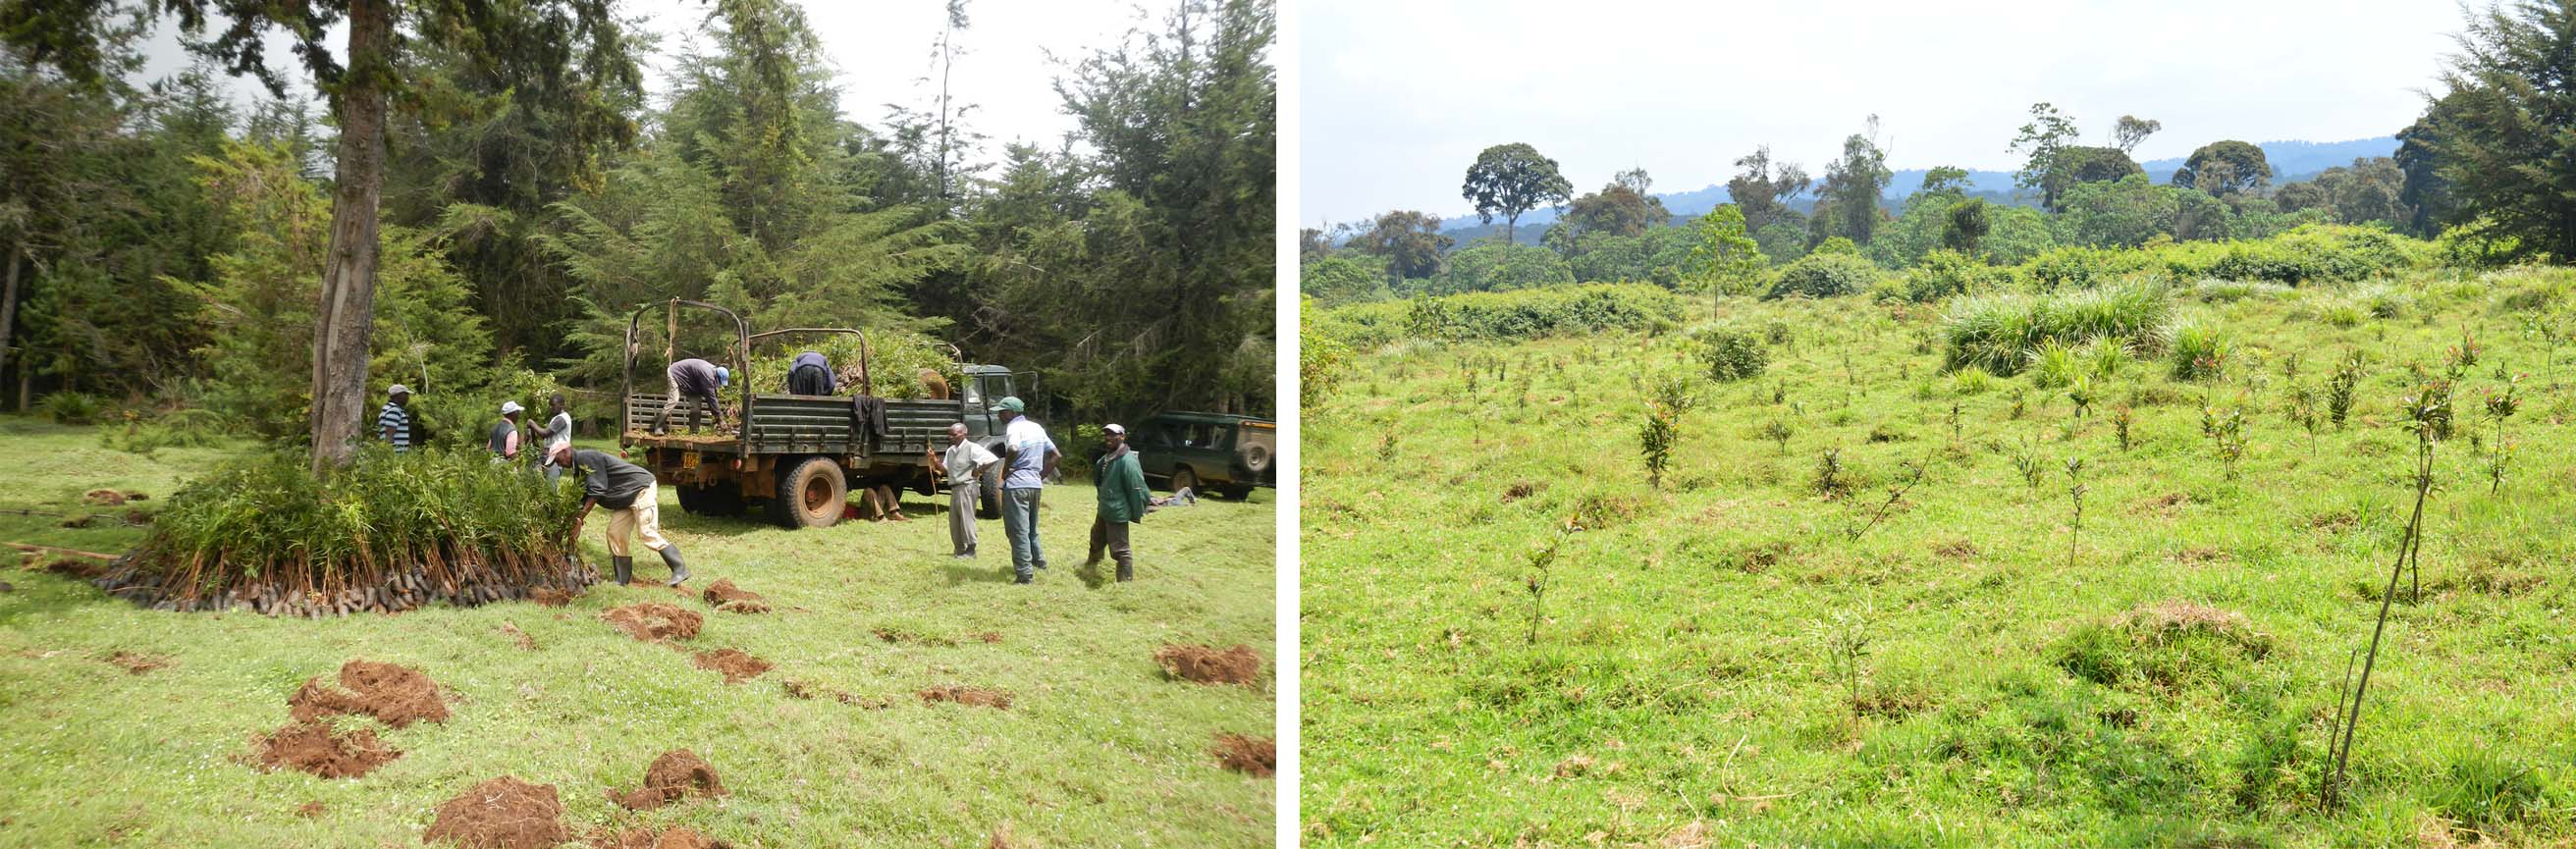 The tree seedlings are offloaded on site in April 2015 and Current status of the site showing a high survival rate of the trees